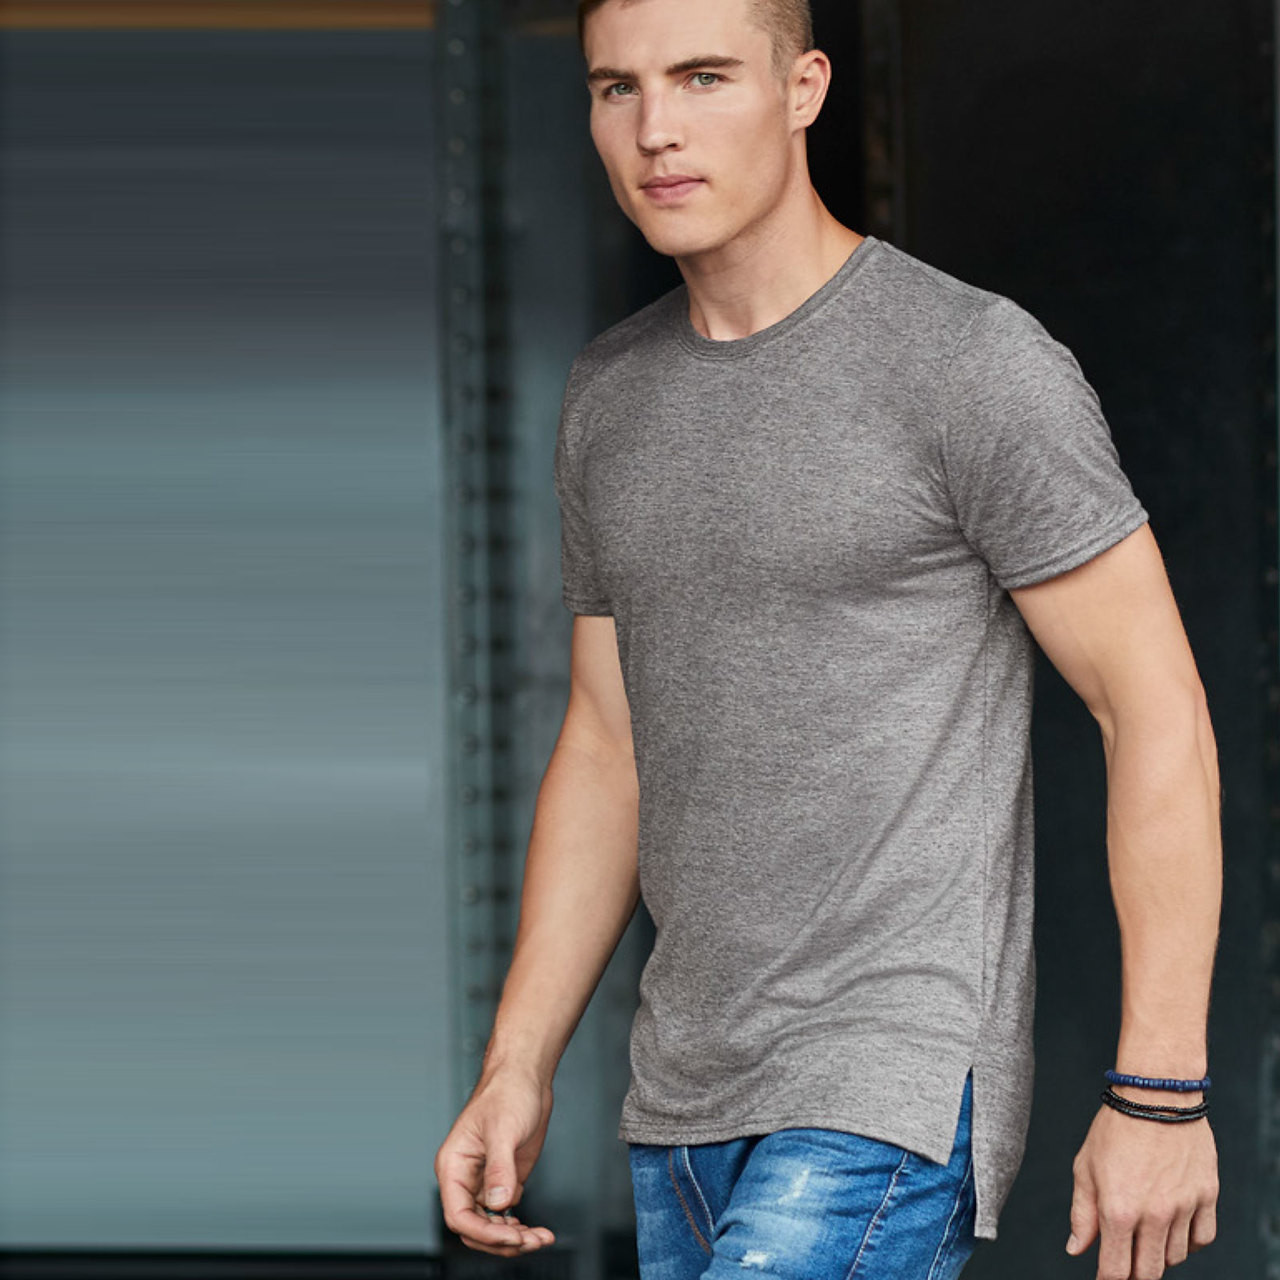 e9f5386f77b7 Anvil Adult Cotton Long & Lean Tshirt - Plain Tshirts Wholesale Online